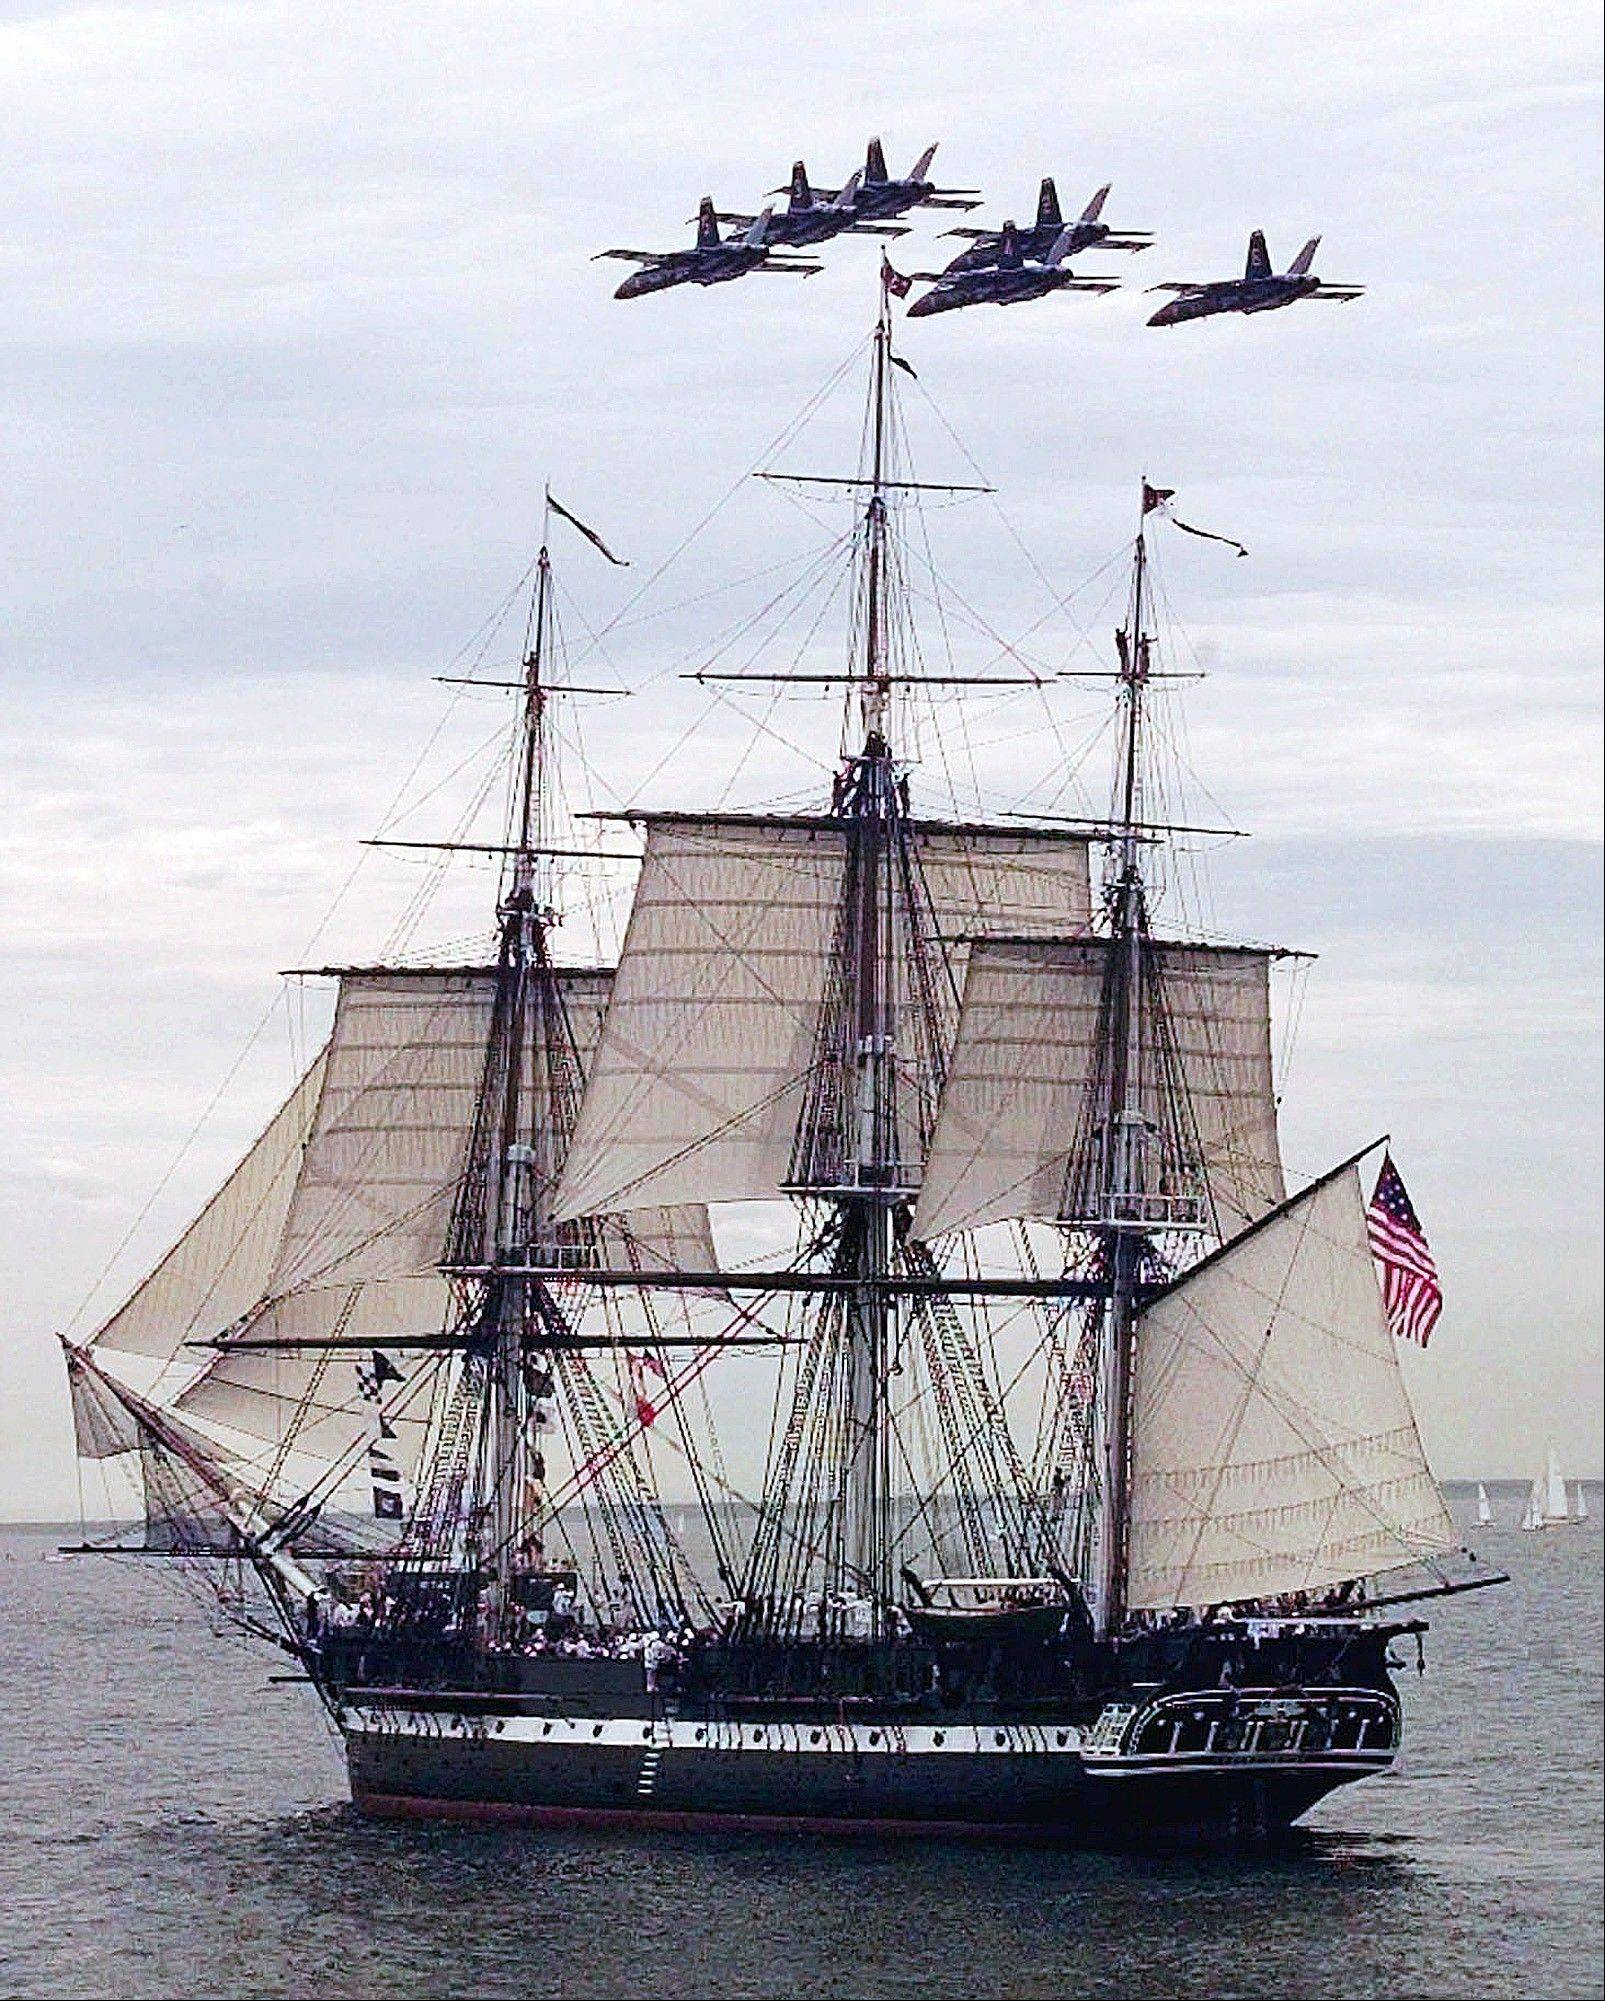 The Blue Angels fly in formation over the USS Constitution as she free sails off the coast of Marblehead, Mass., in celebration of her 200th birthday in 1997.